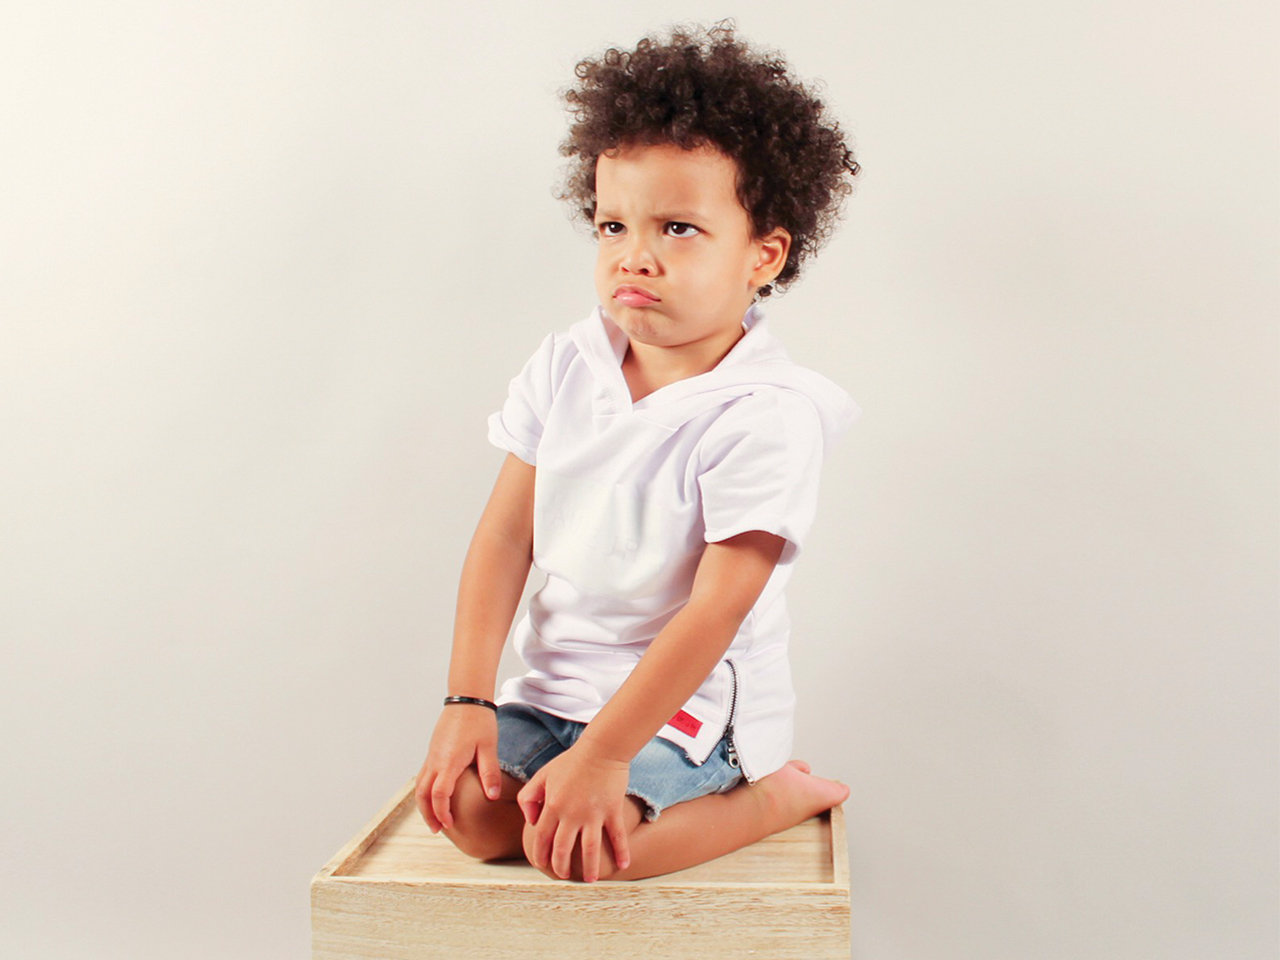 A young boy pouts as he kneels on a crate